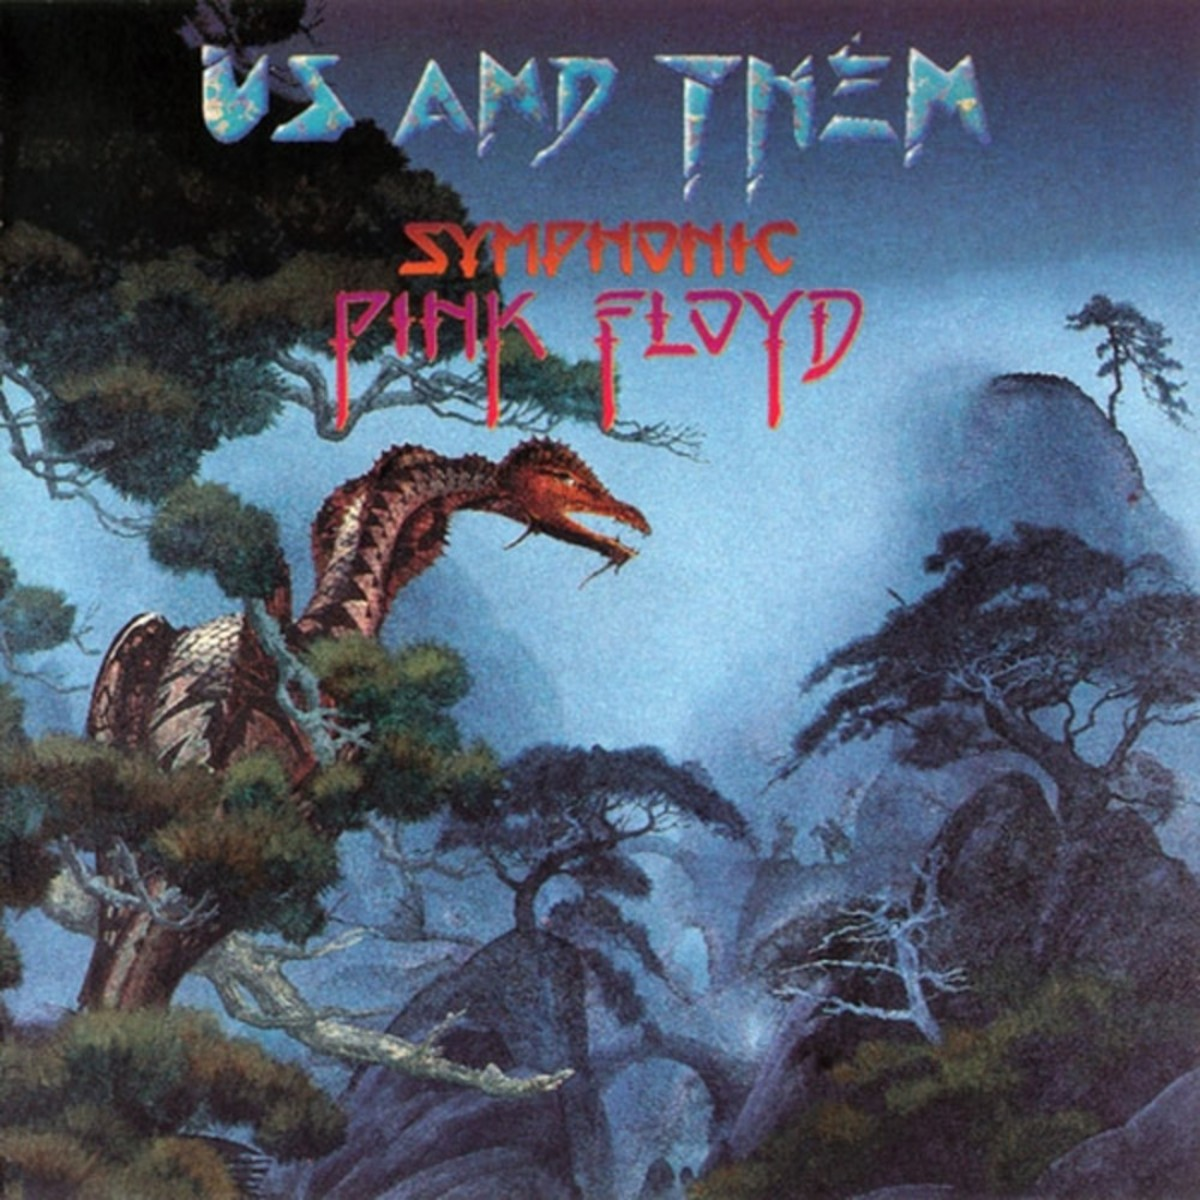 "Various Artist ""Us And Them: Symphonic Pink Floyd"" Point Music 446 623-2 US Pressing (1995) CD Album Cover Art & Design by Roger Dean"